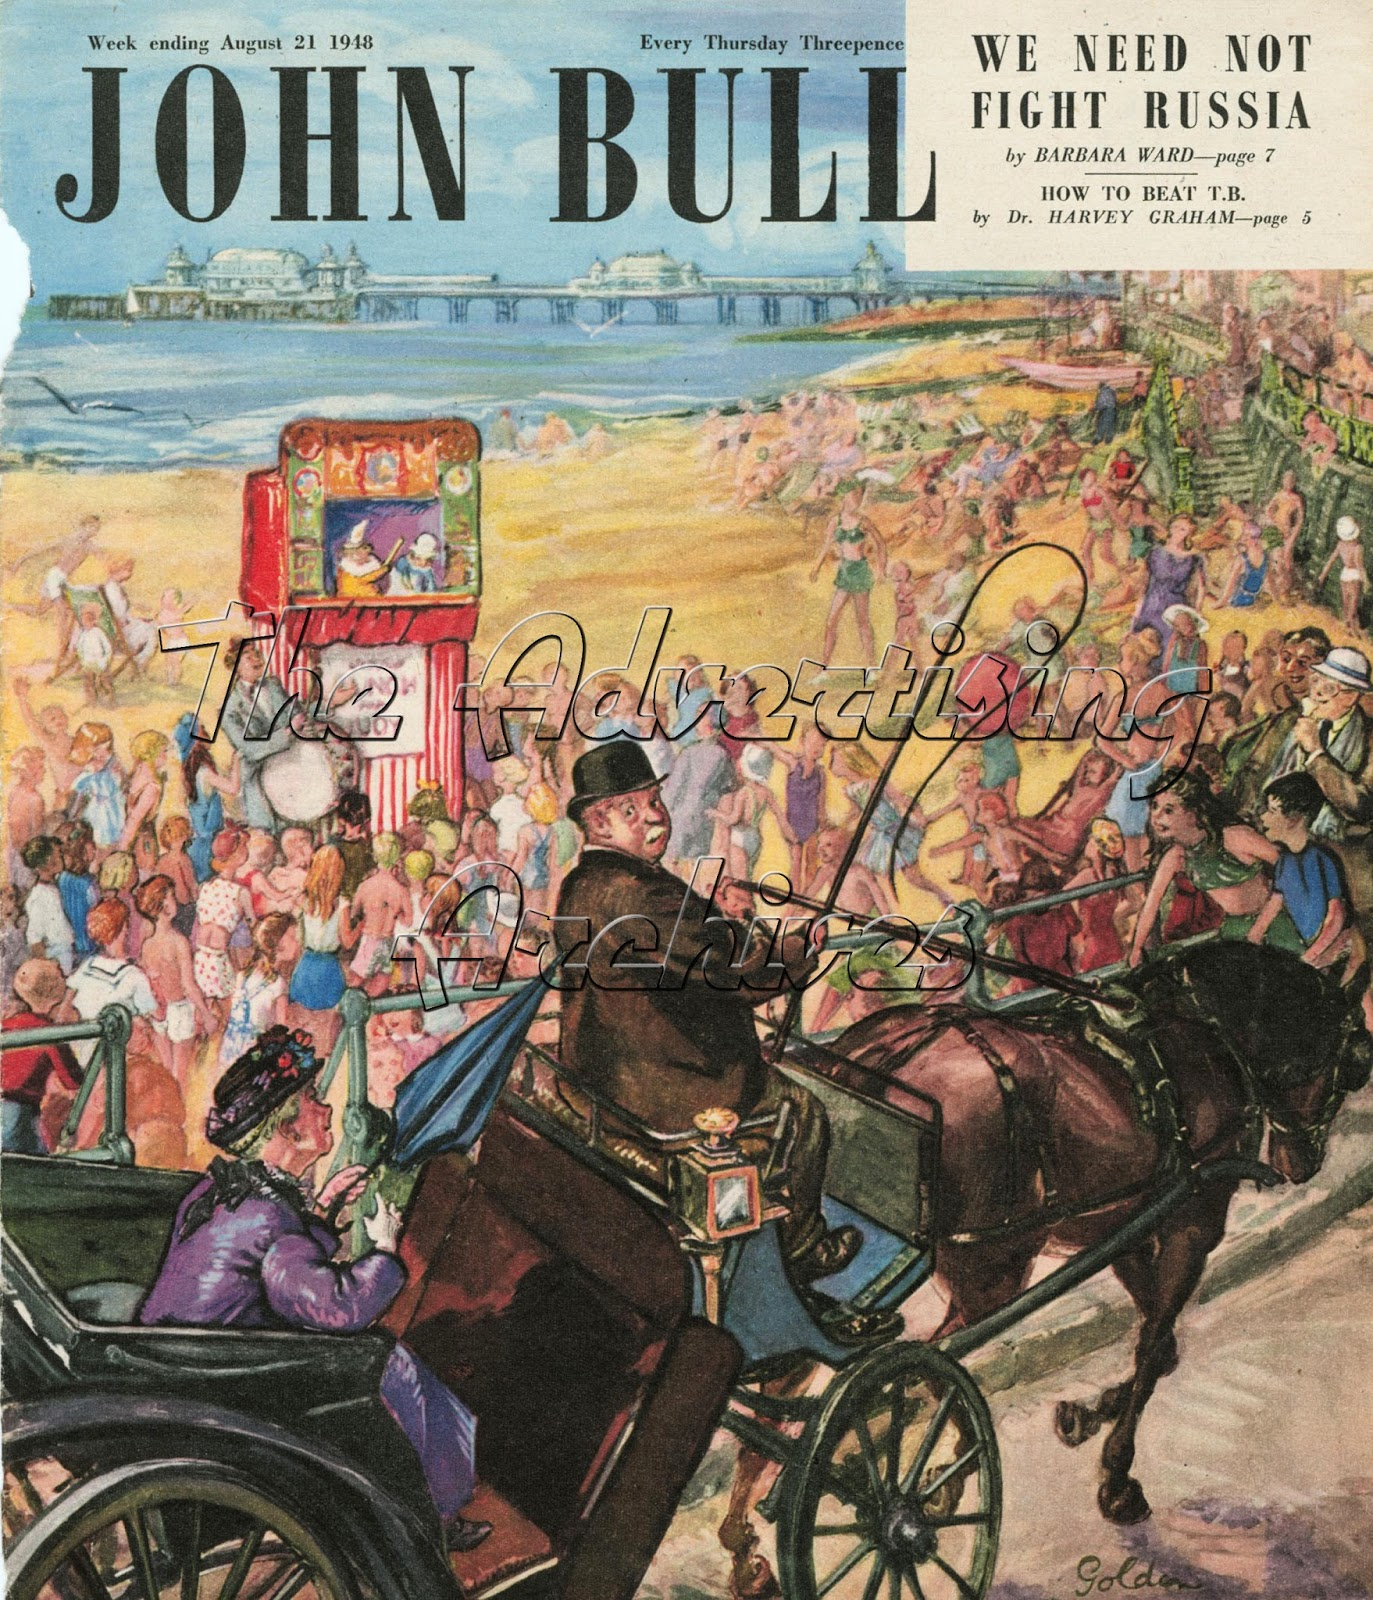 http://www.advertisingarchives.co.uk/index.php?service=search&action=do_quick_search&language=en&q=john+bull+holidays